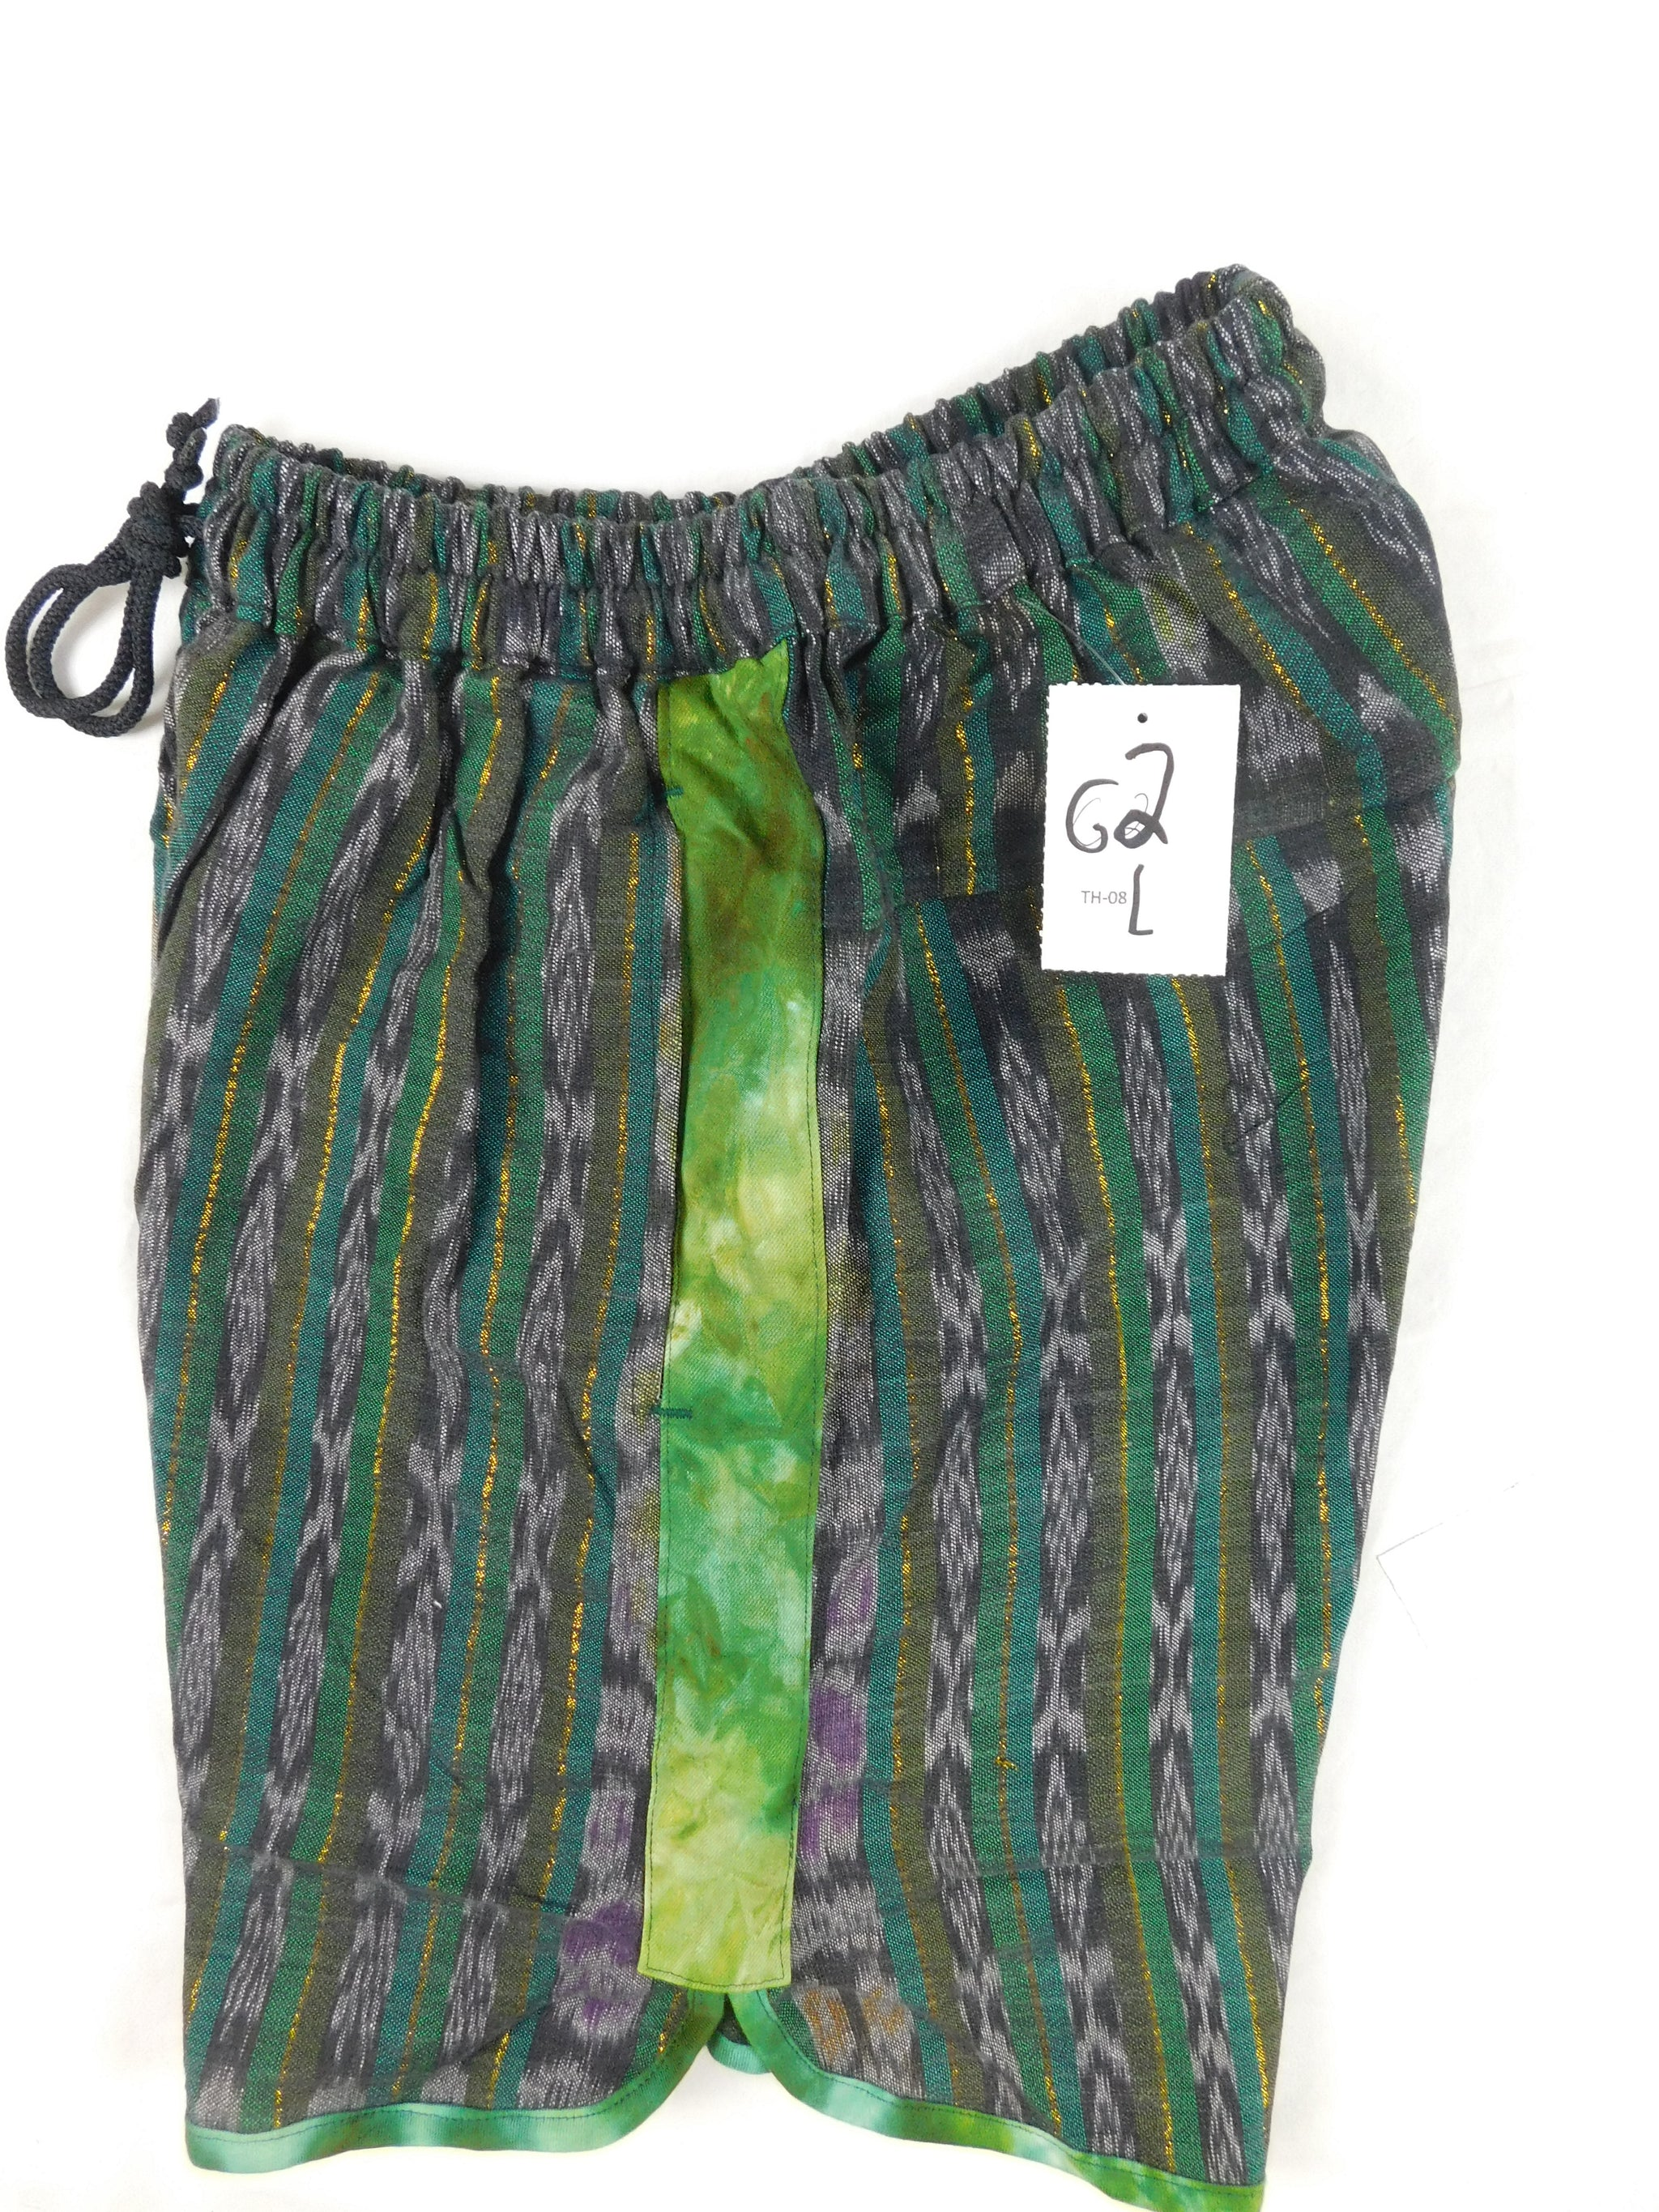 Summer Shorts in Native Cotton with Tie Dye Accents